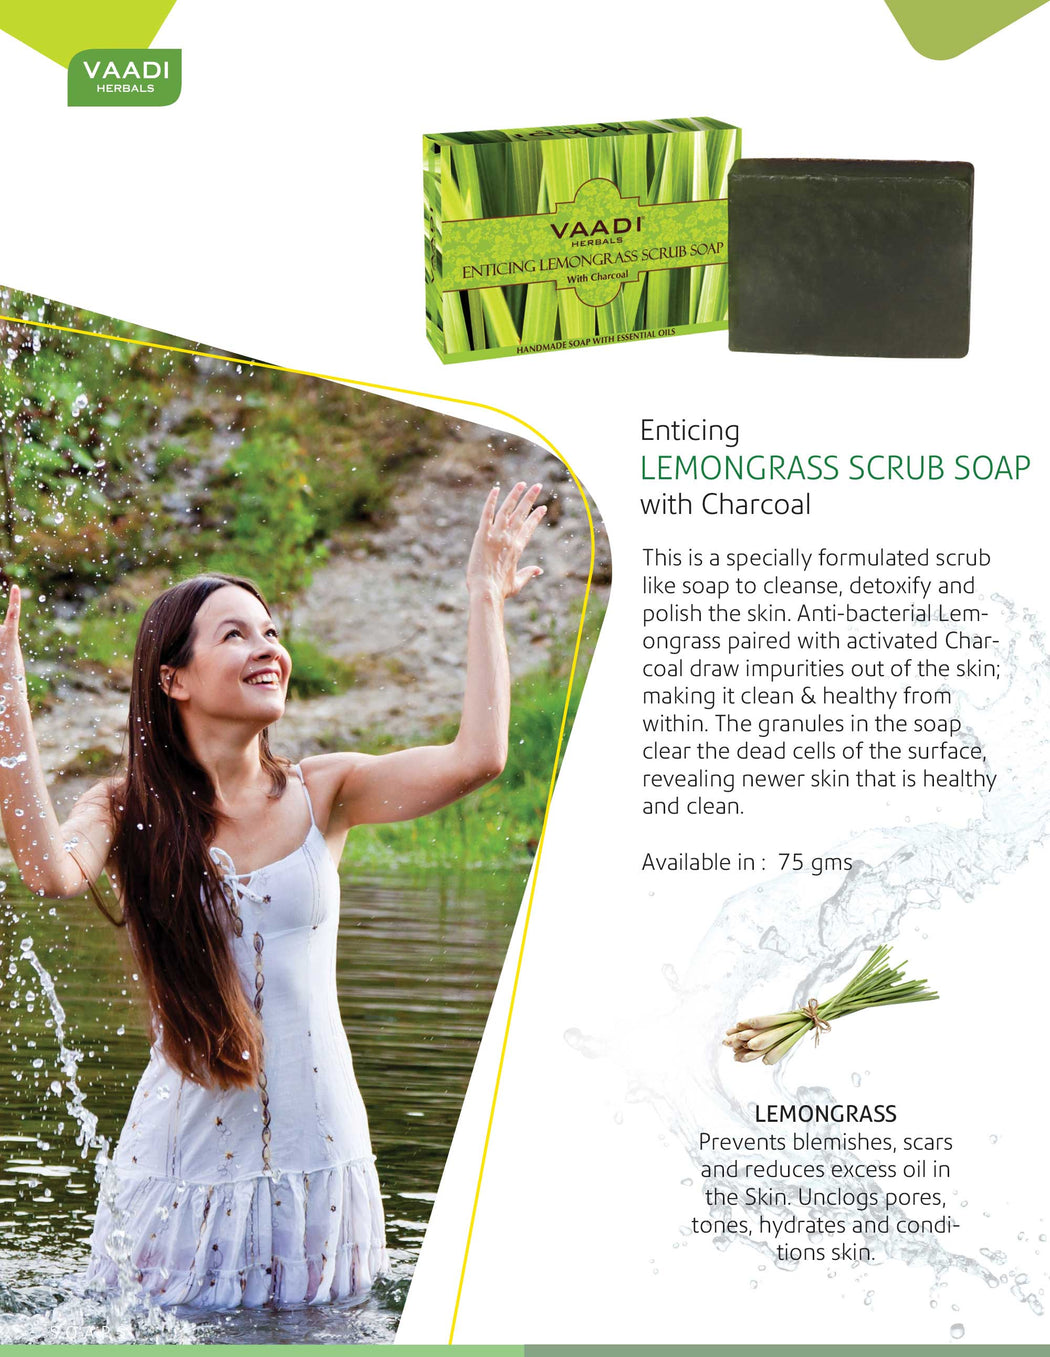 Enticing Organic Lemongrass Soap with Charcoal - Exfoliates & Polishes Skin (75 gms / 2.7 oz)